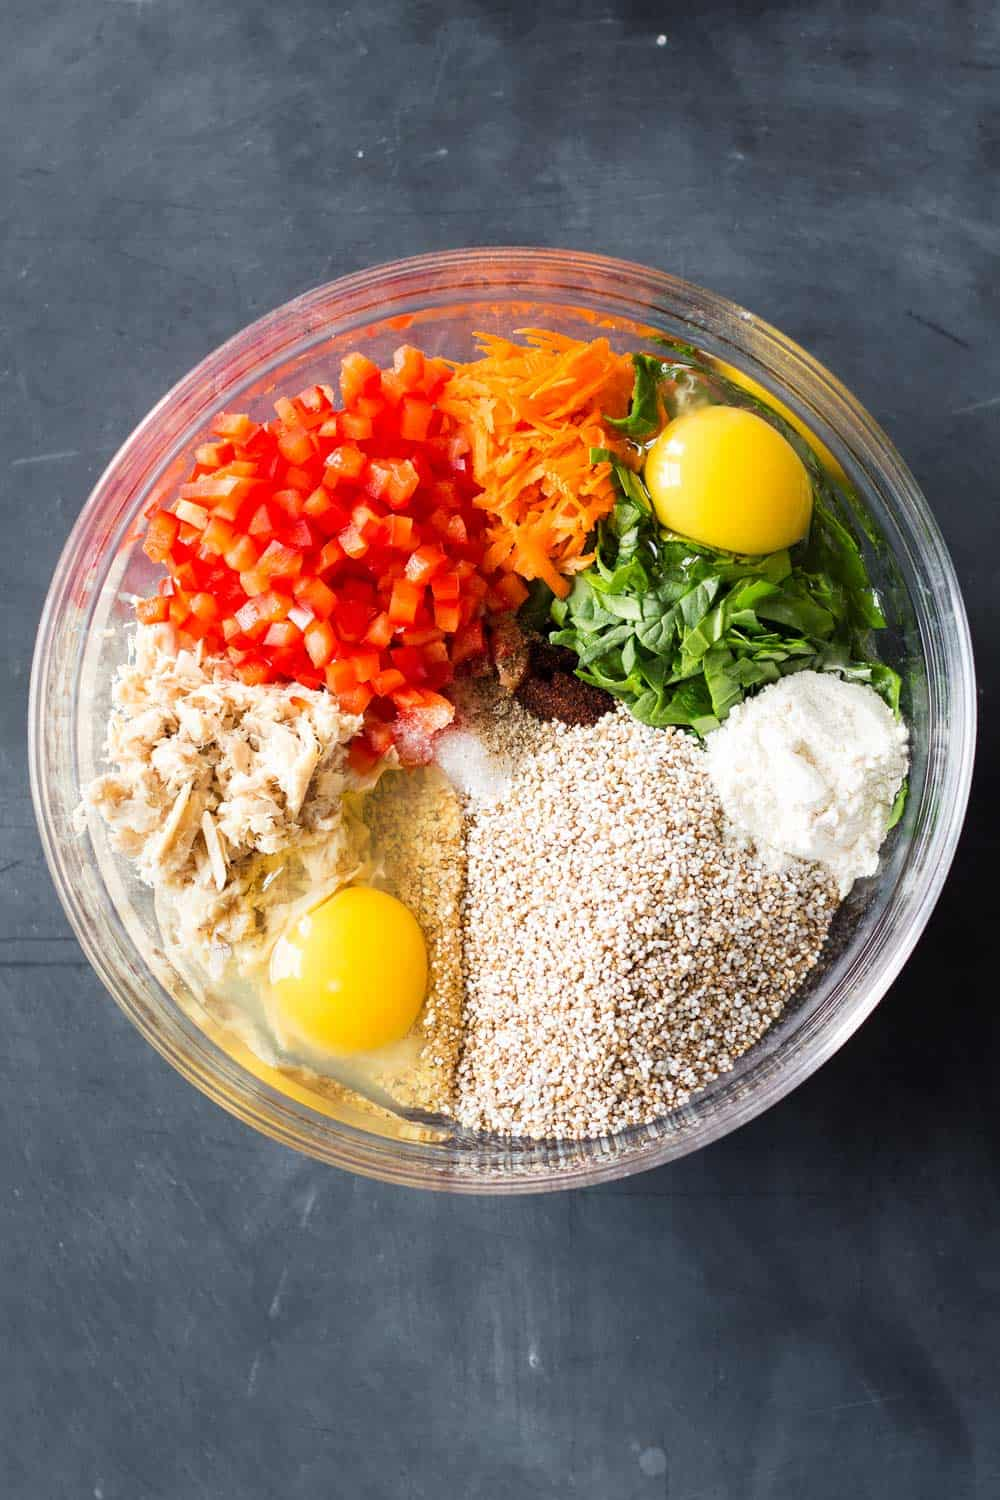 Ingredients for healthy Tuna Patties in a bowl. Puffed Amaranth, Eggs, Tuna, Chopped Bell Pepper, Grated Carrot, Chopped Baby Spinach, Flour, Chipotle Powder, Sea Salt, Pepper.